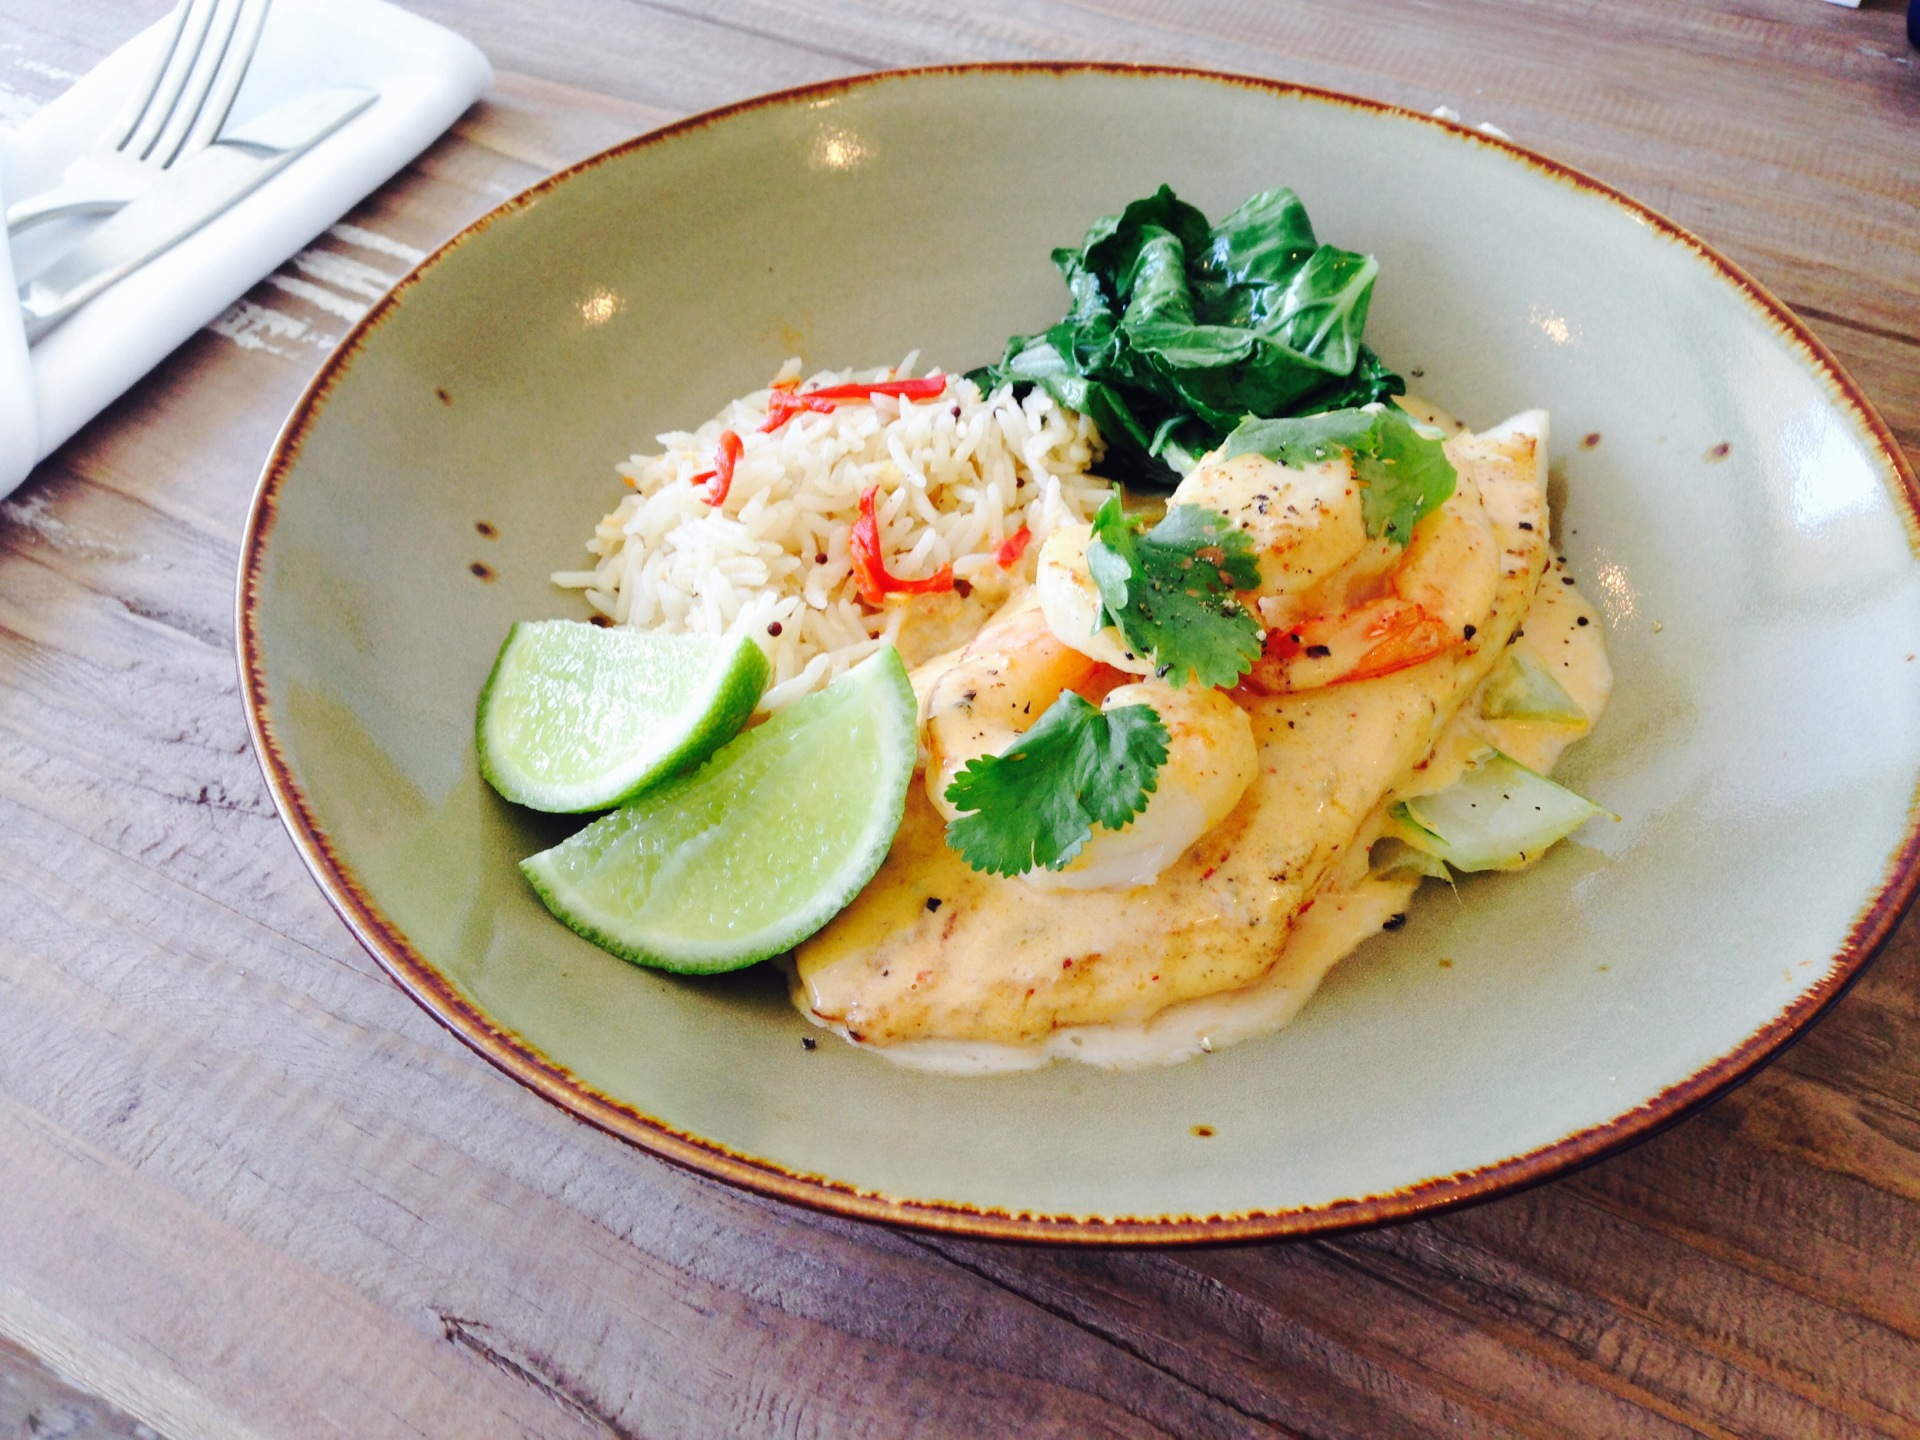 Lime & Coconut Perch with Mooloolaba Prawns